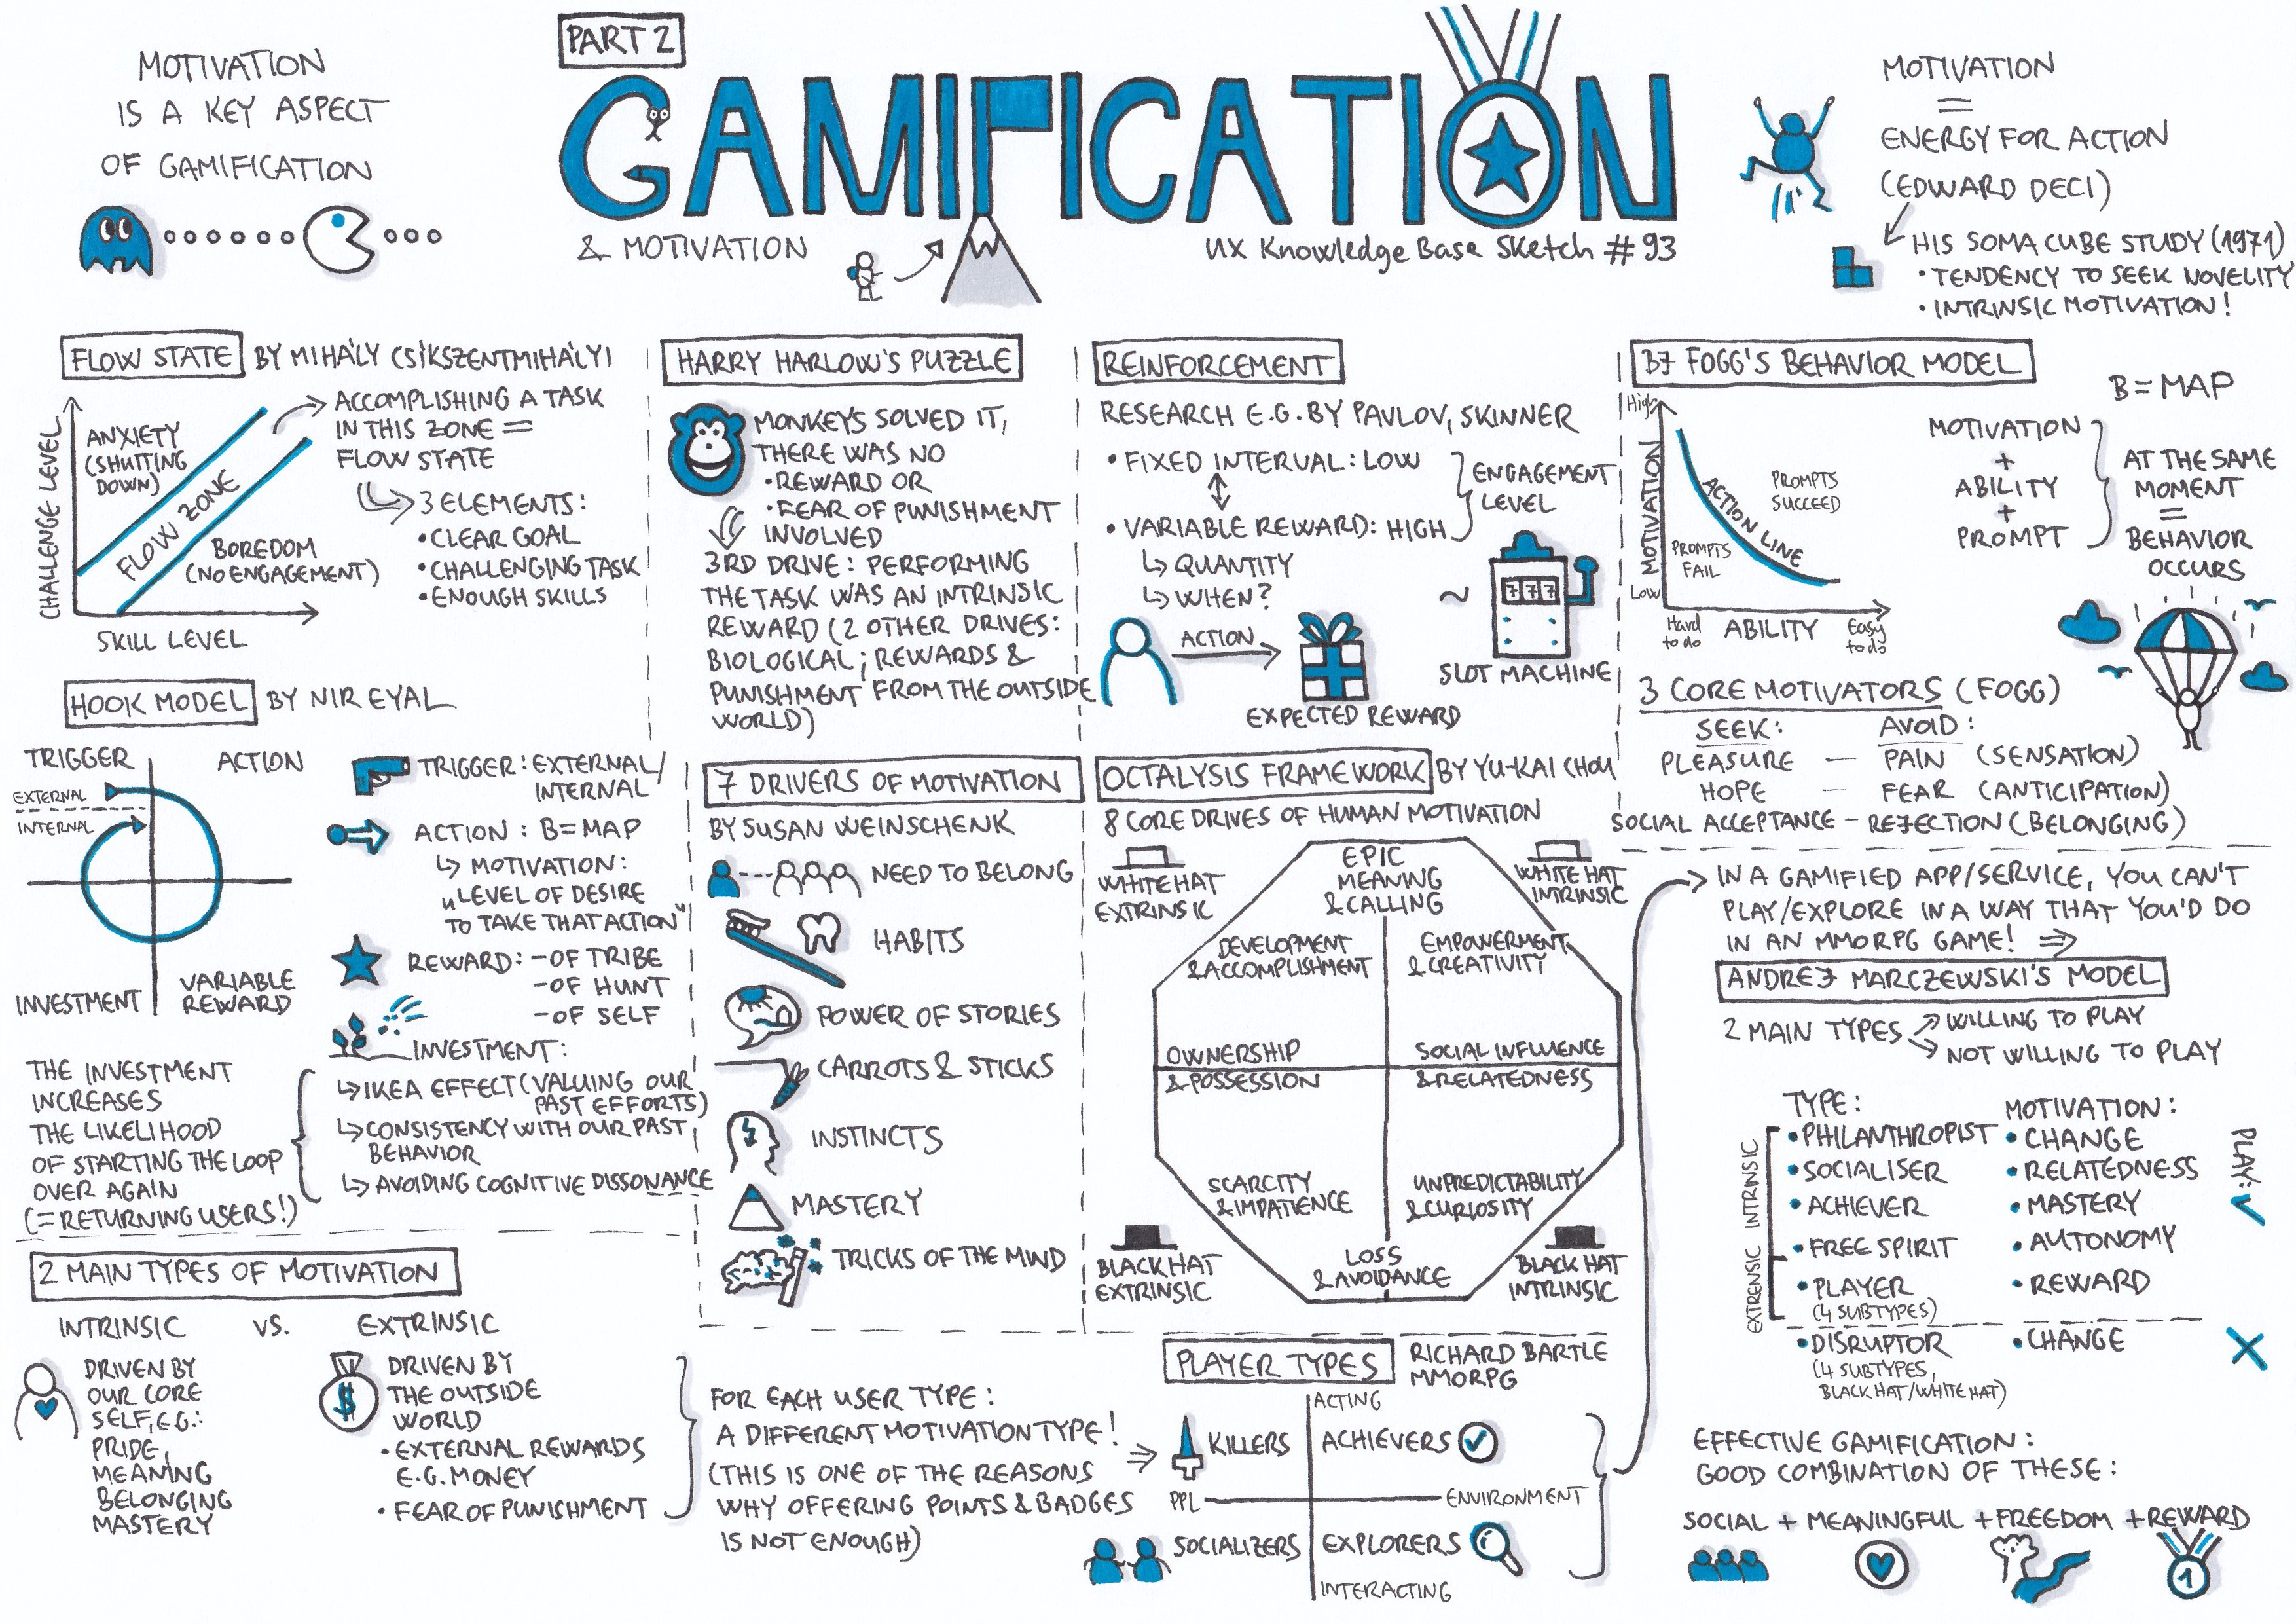 Gamification — Part 2 - UX Knowledge Base Sketch